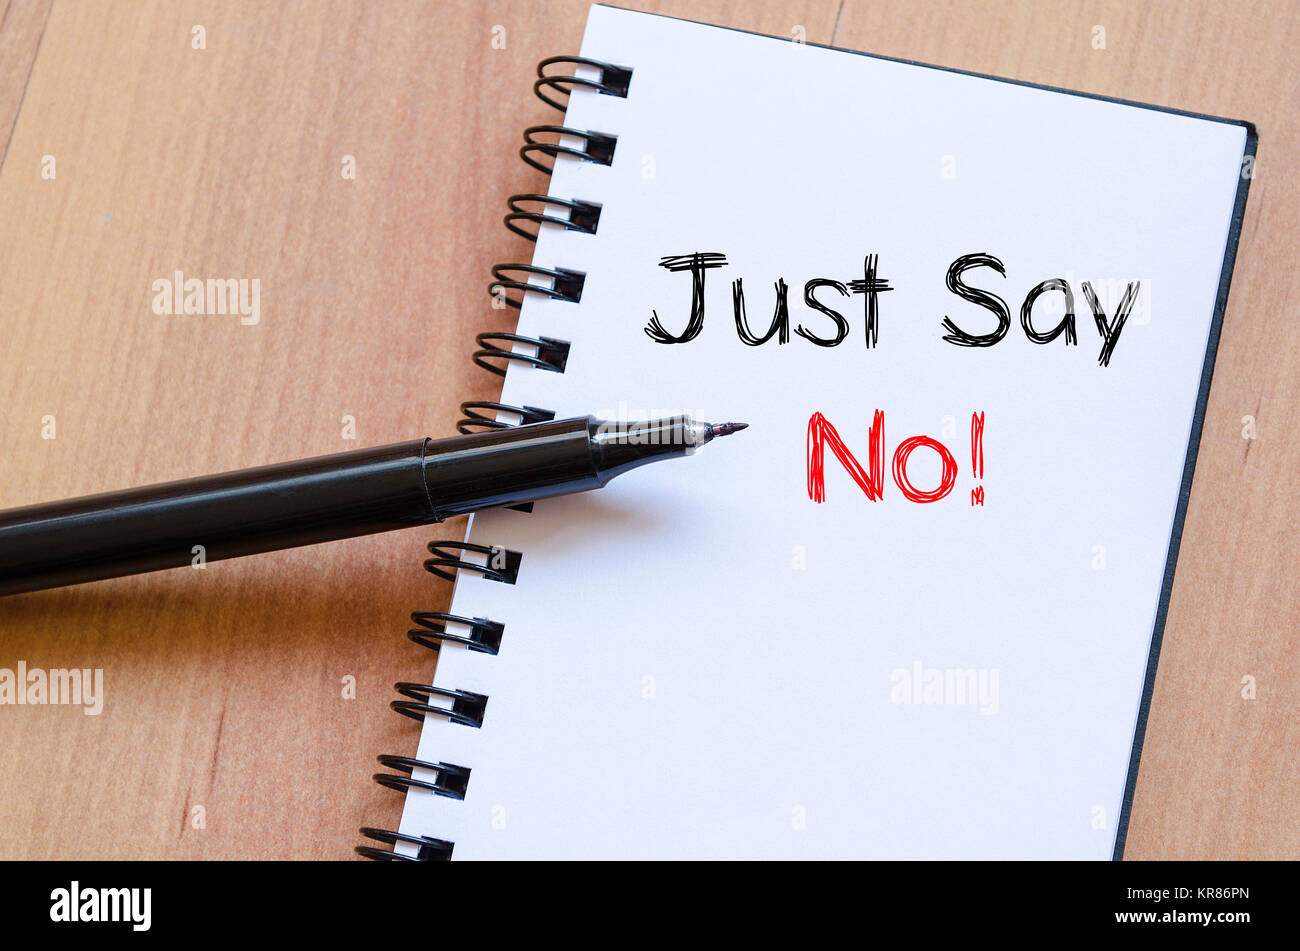 Just say no text concept on notebook - Stock Image